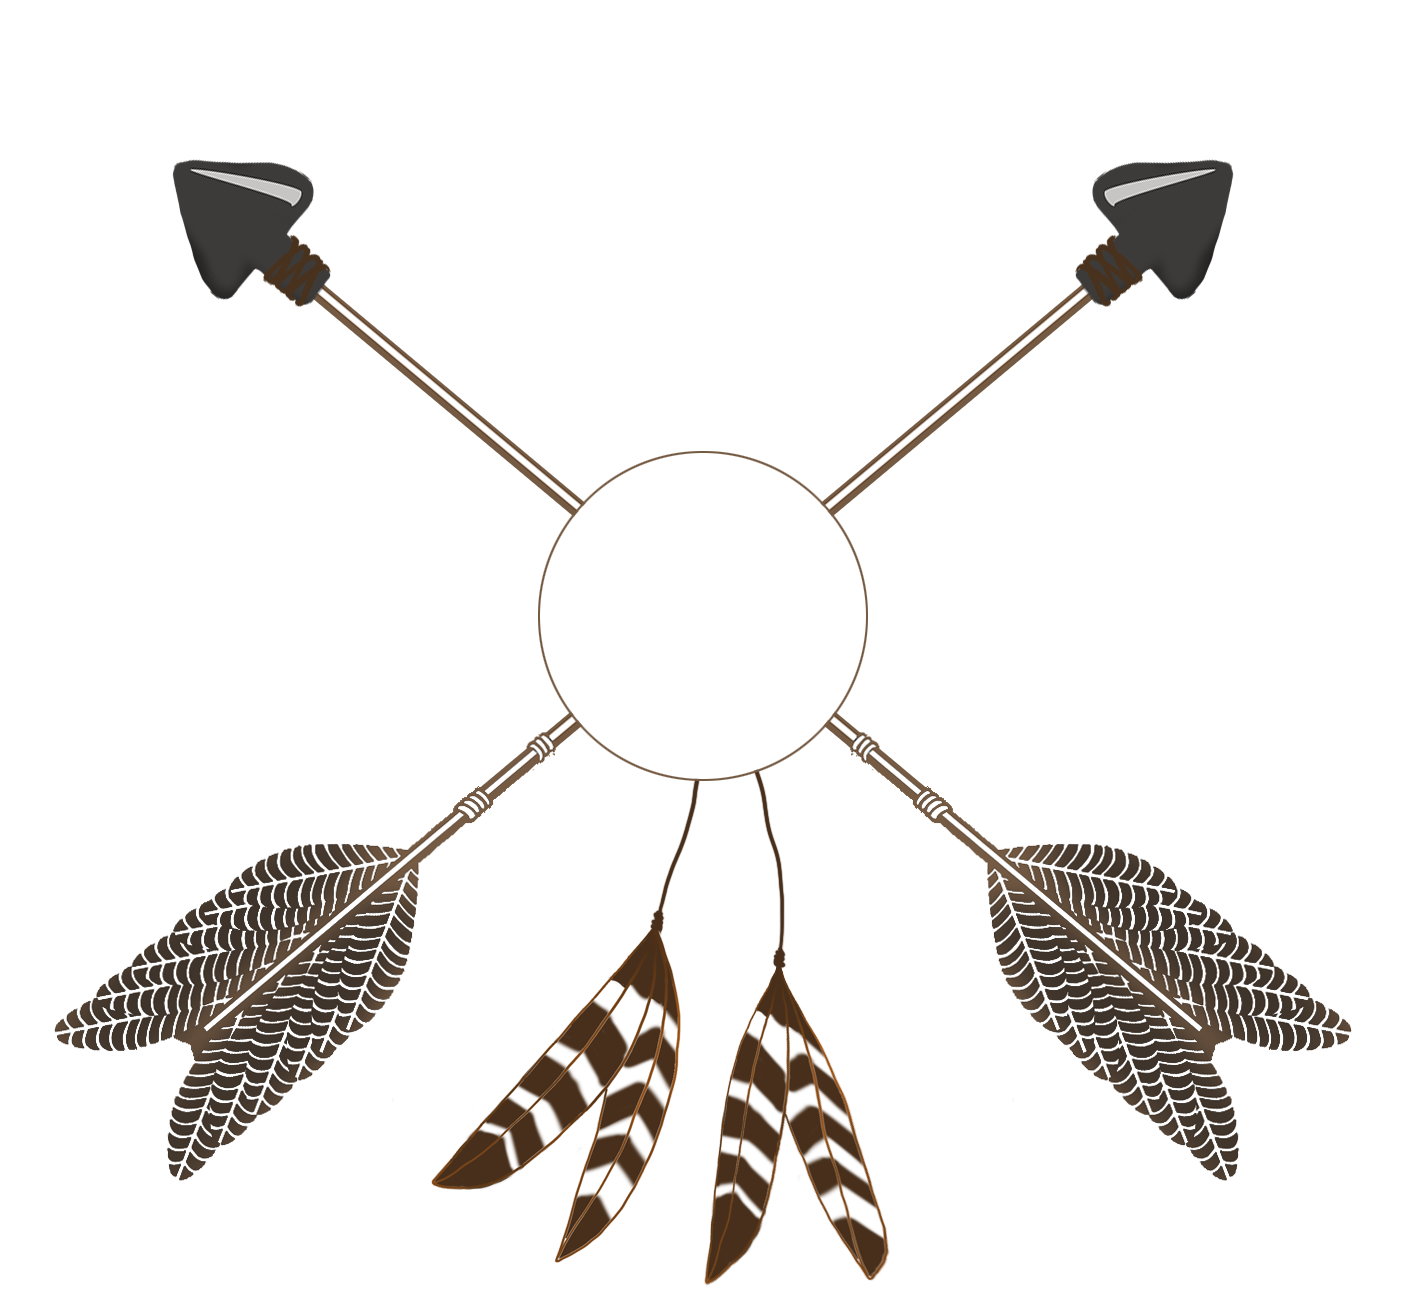 crossed tribal arrows with feathers